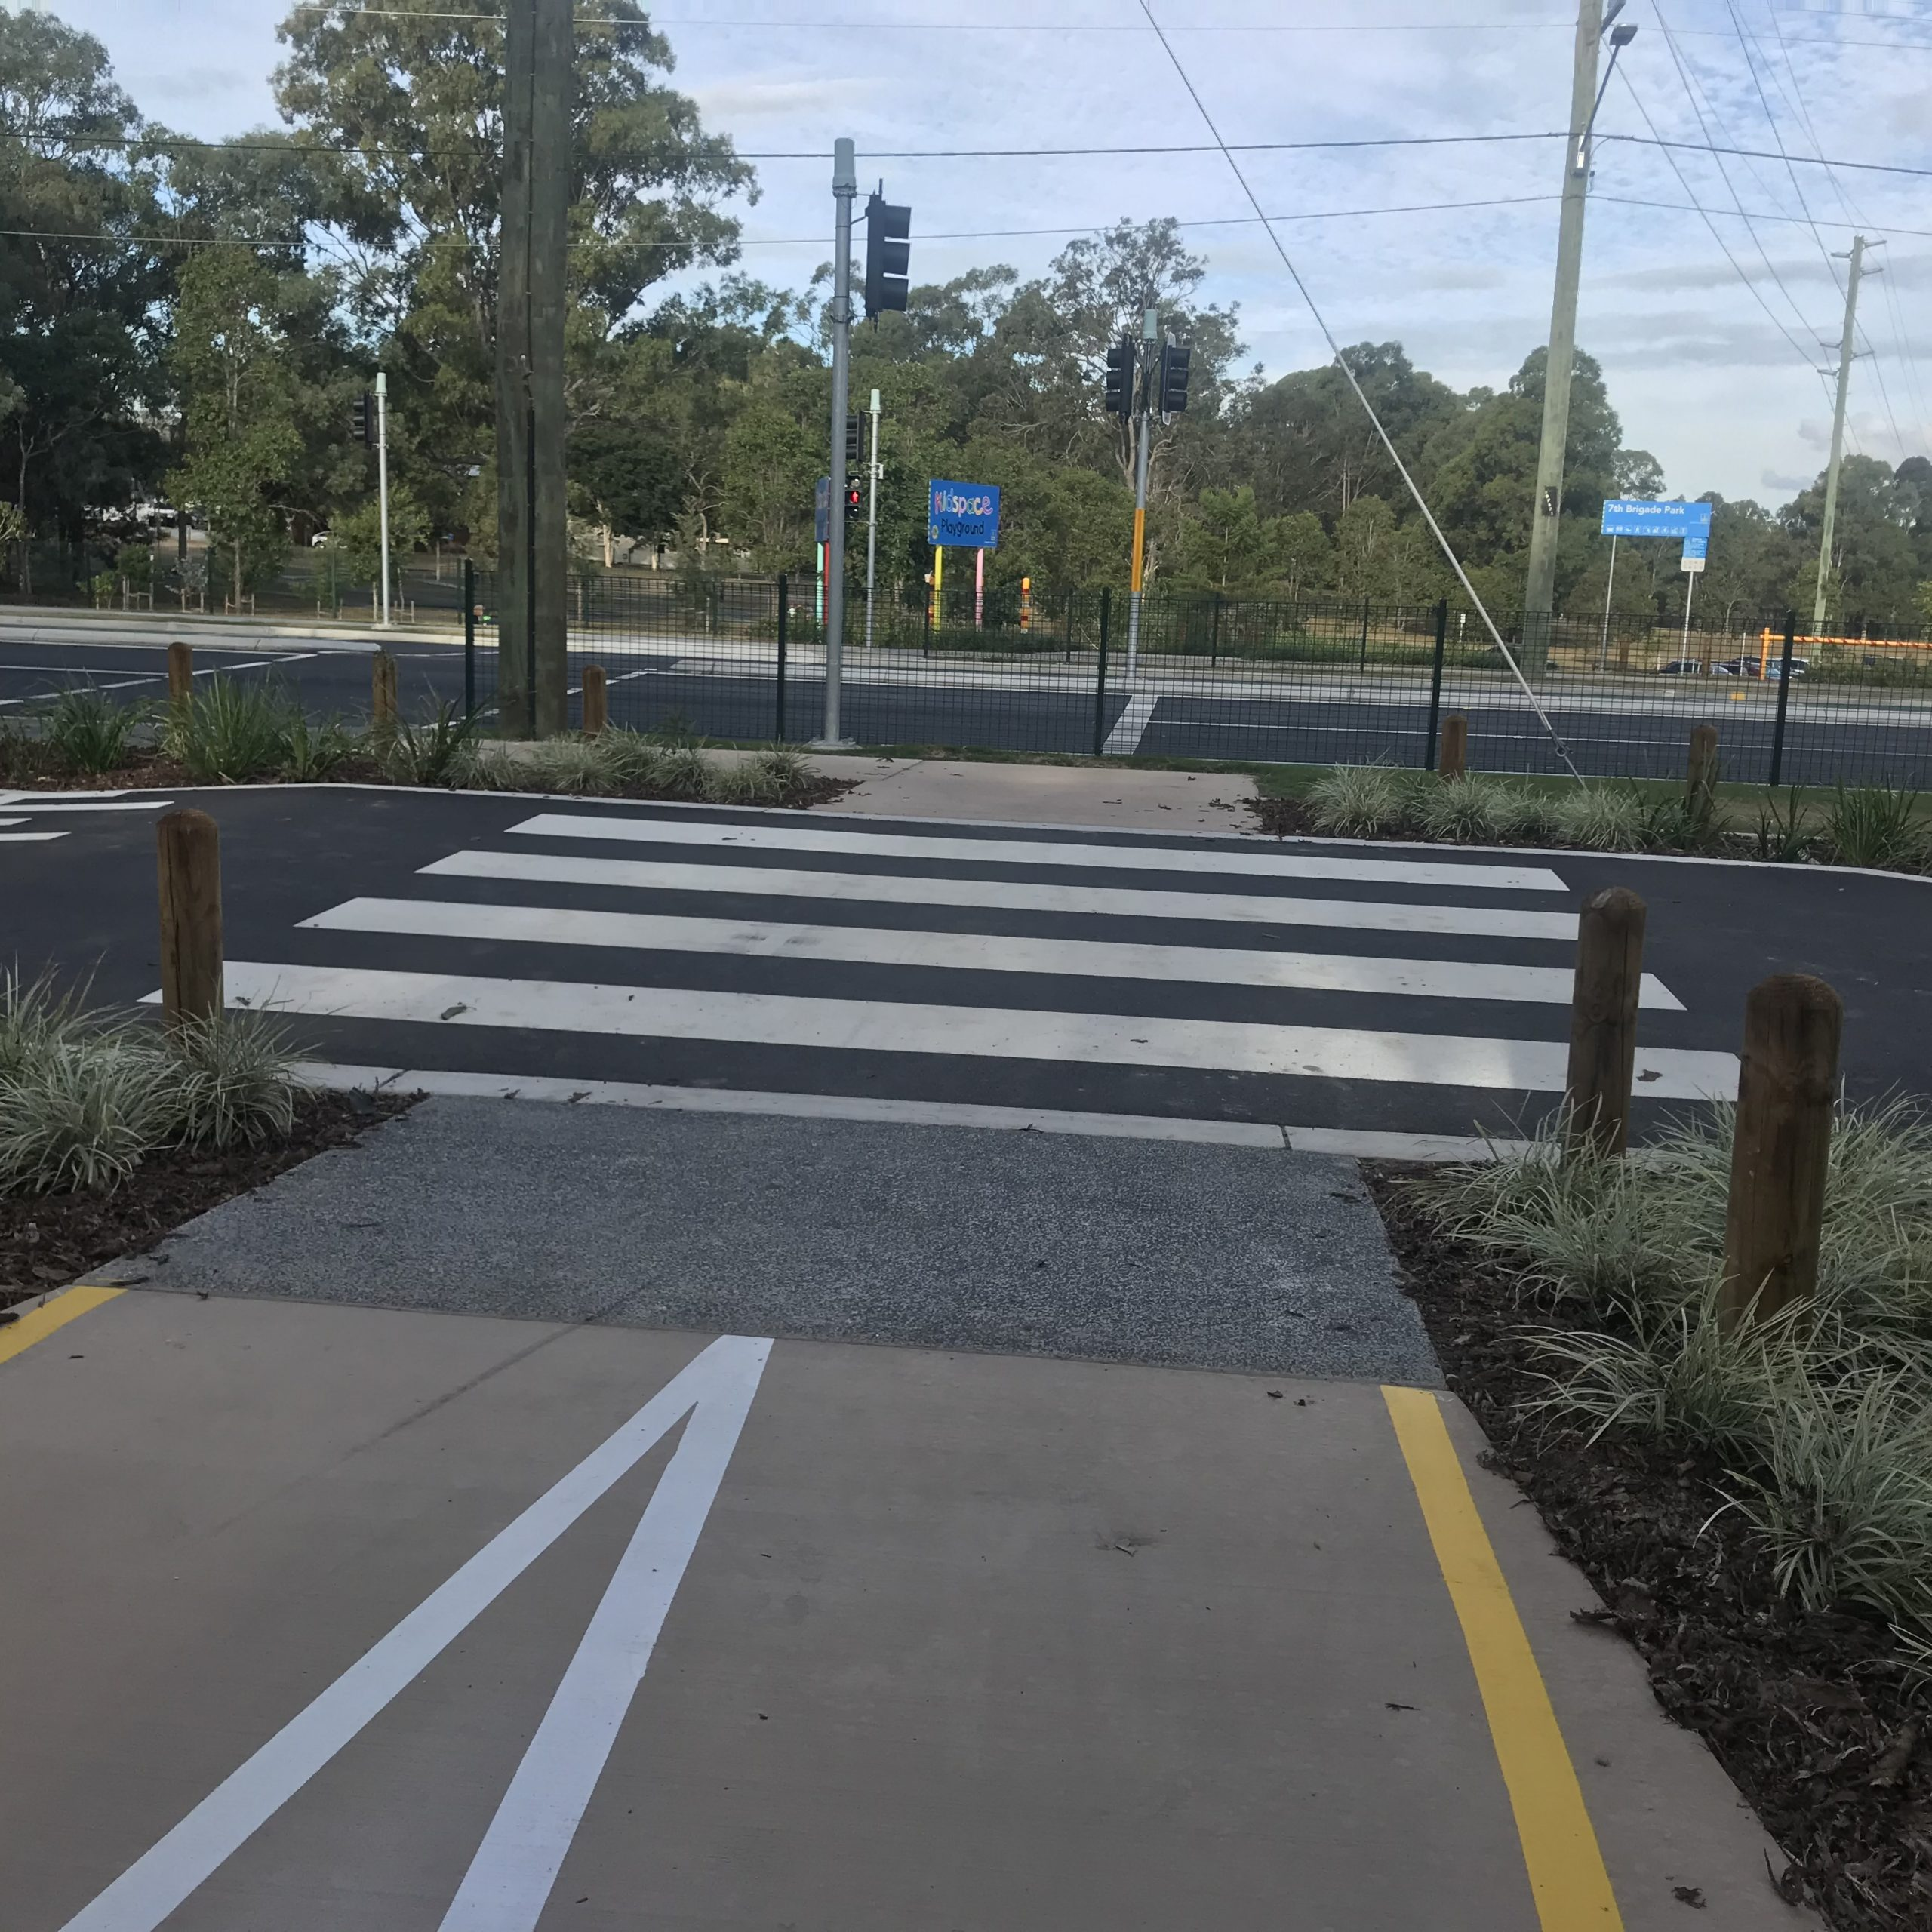 A good footpath or safe crossing